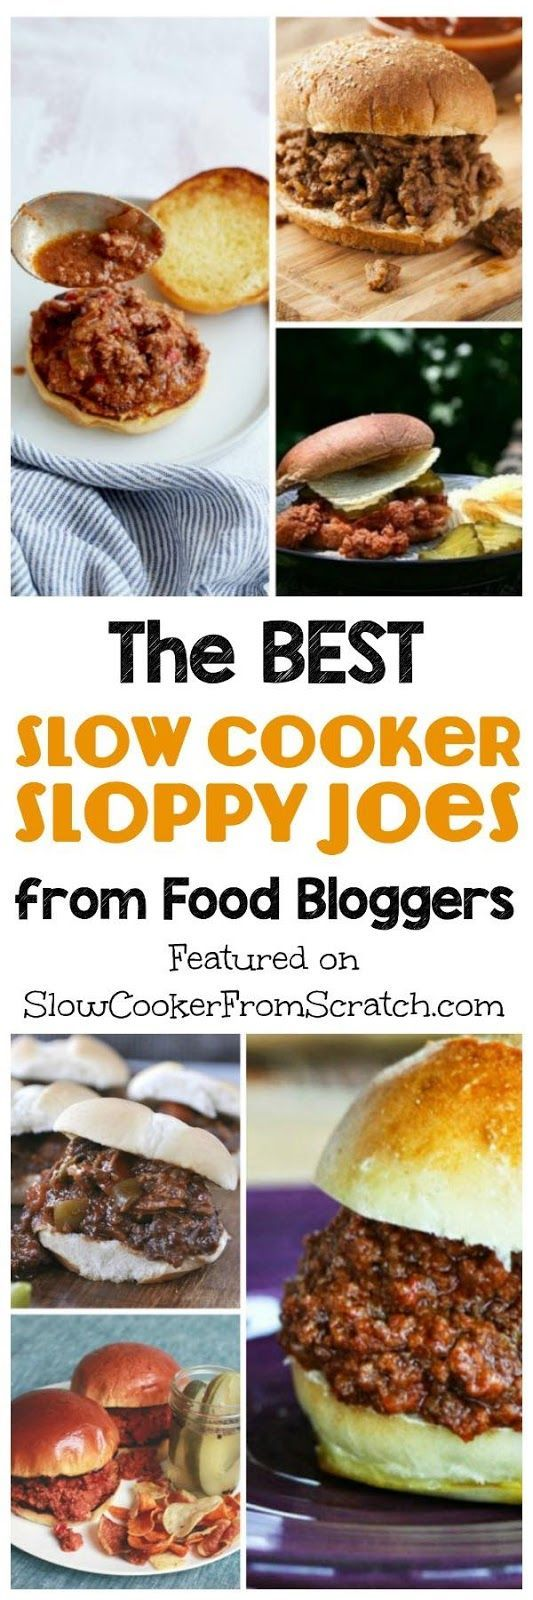 Everyone loves Sloppy Joes, dont they, and here are The BEST Slow Cooker Sloppy Joes from Food Bloggers. All these Slow Cooker Sloppy Joes recipes use from-scratch ingredients, and there are Sloppy Joe's for everyone, even vegetarian ones made with lentils! [found on  SlowCookerFromScratch.com]